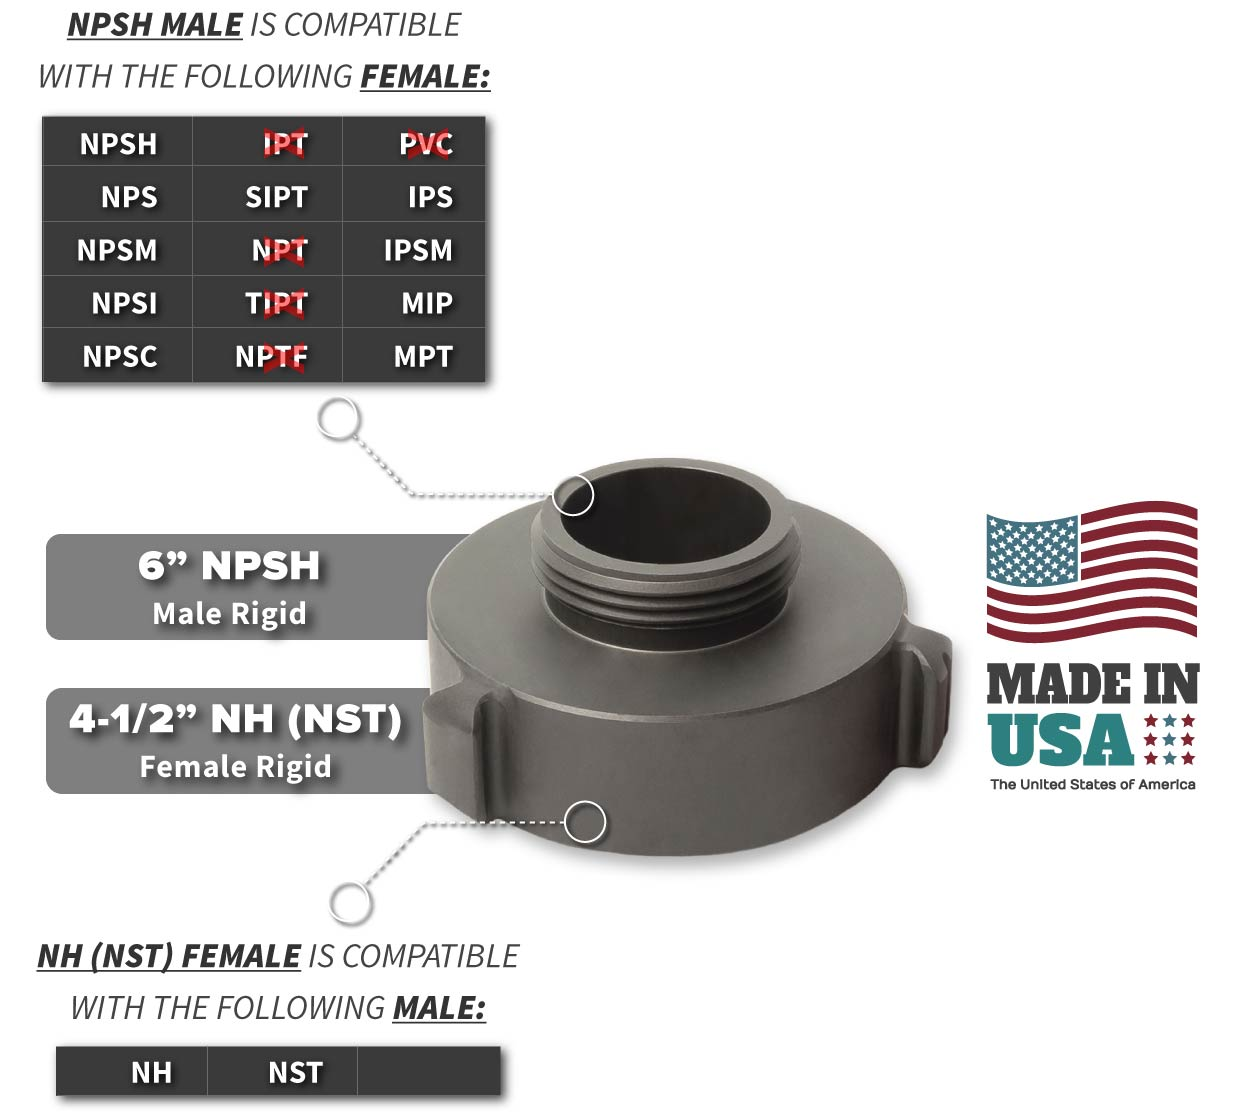 4.5 Inch NH-NST Female x 6 Inch NPSH Male Compatibility Thread Chart